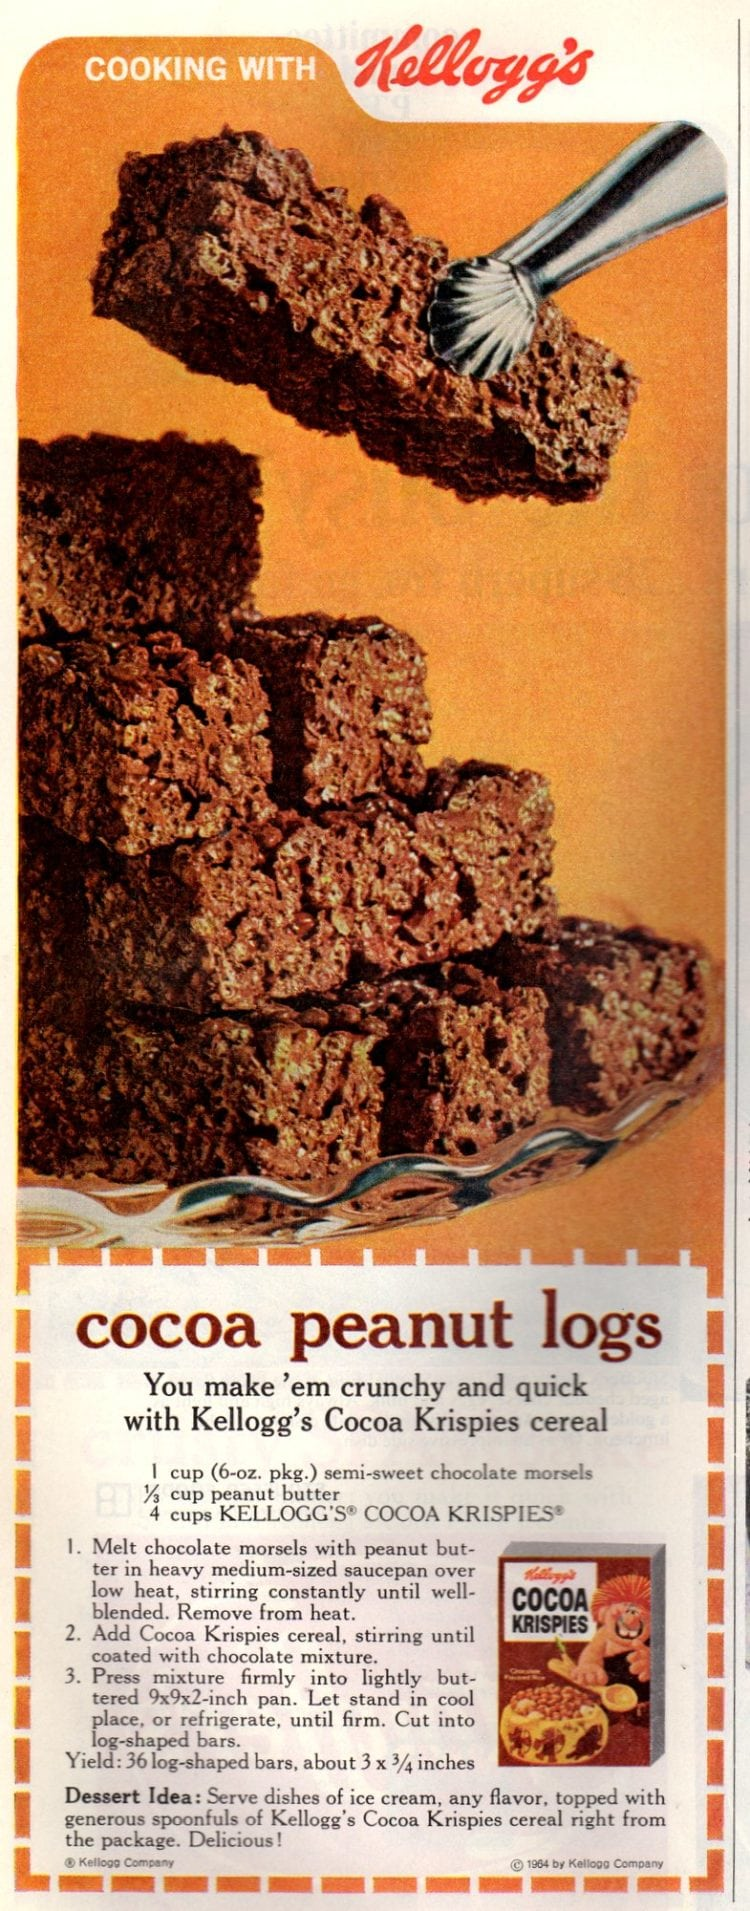 Cocoa peanut logs with Cocoa Krispies cereal (1968)